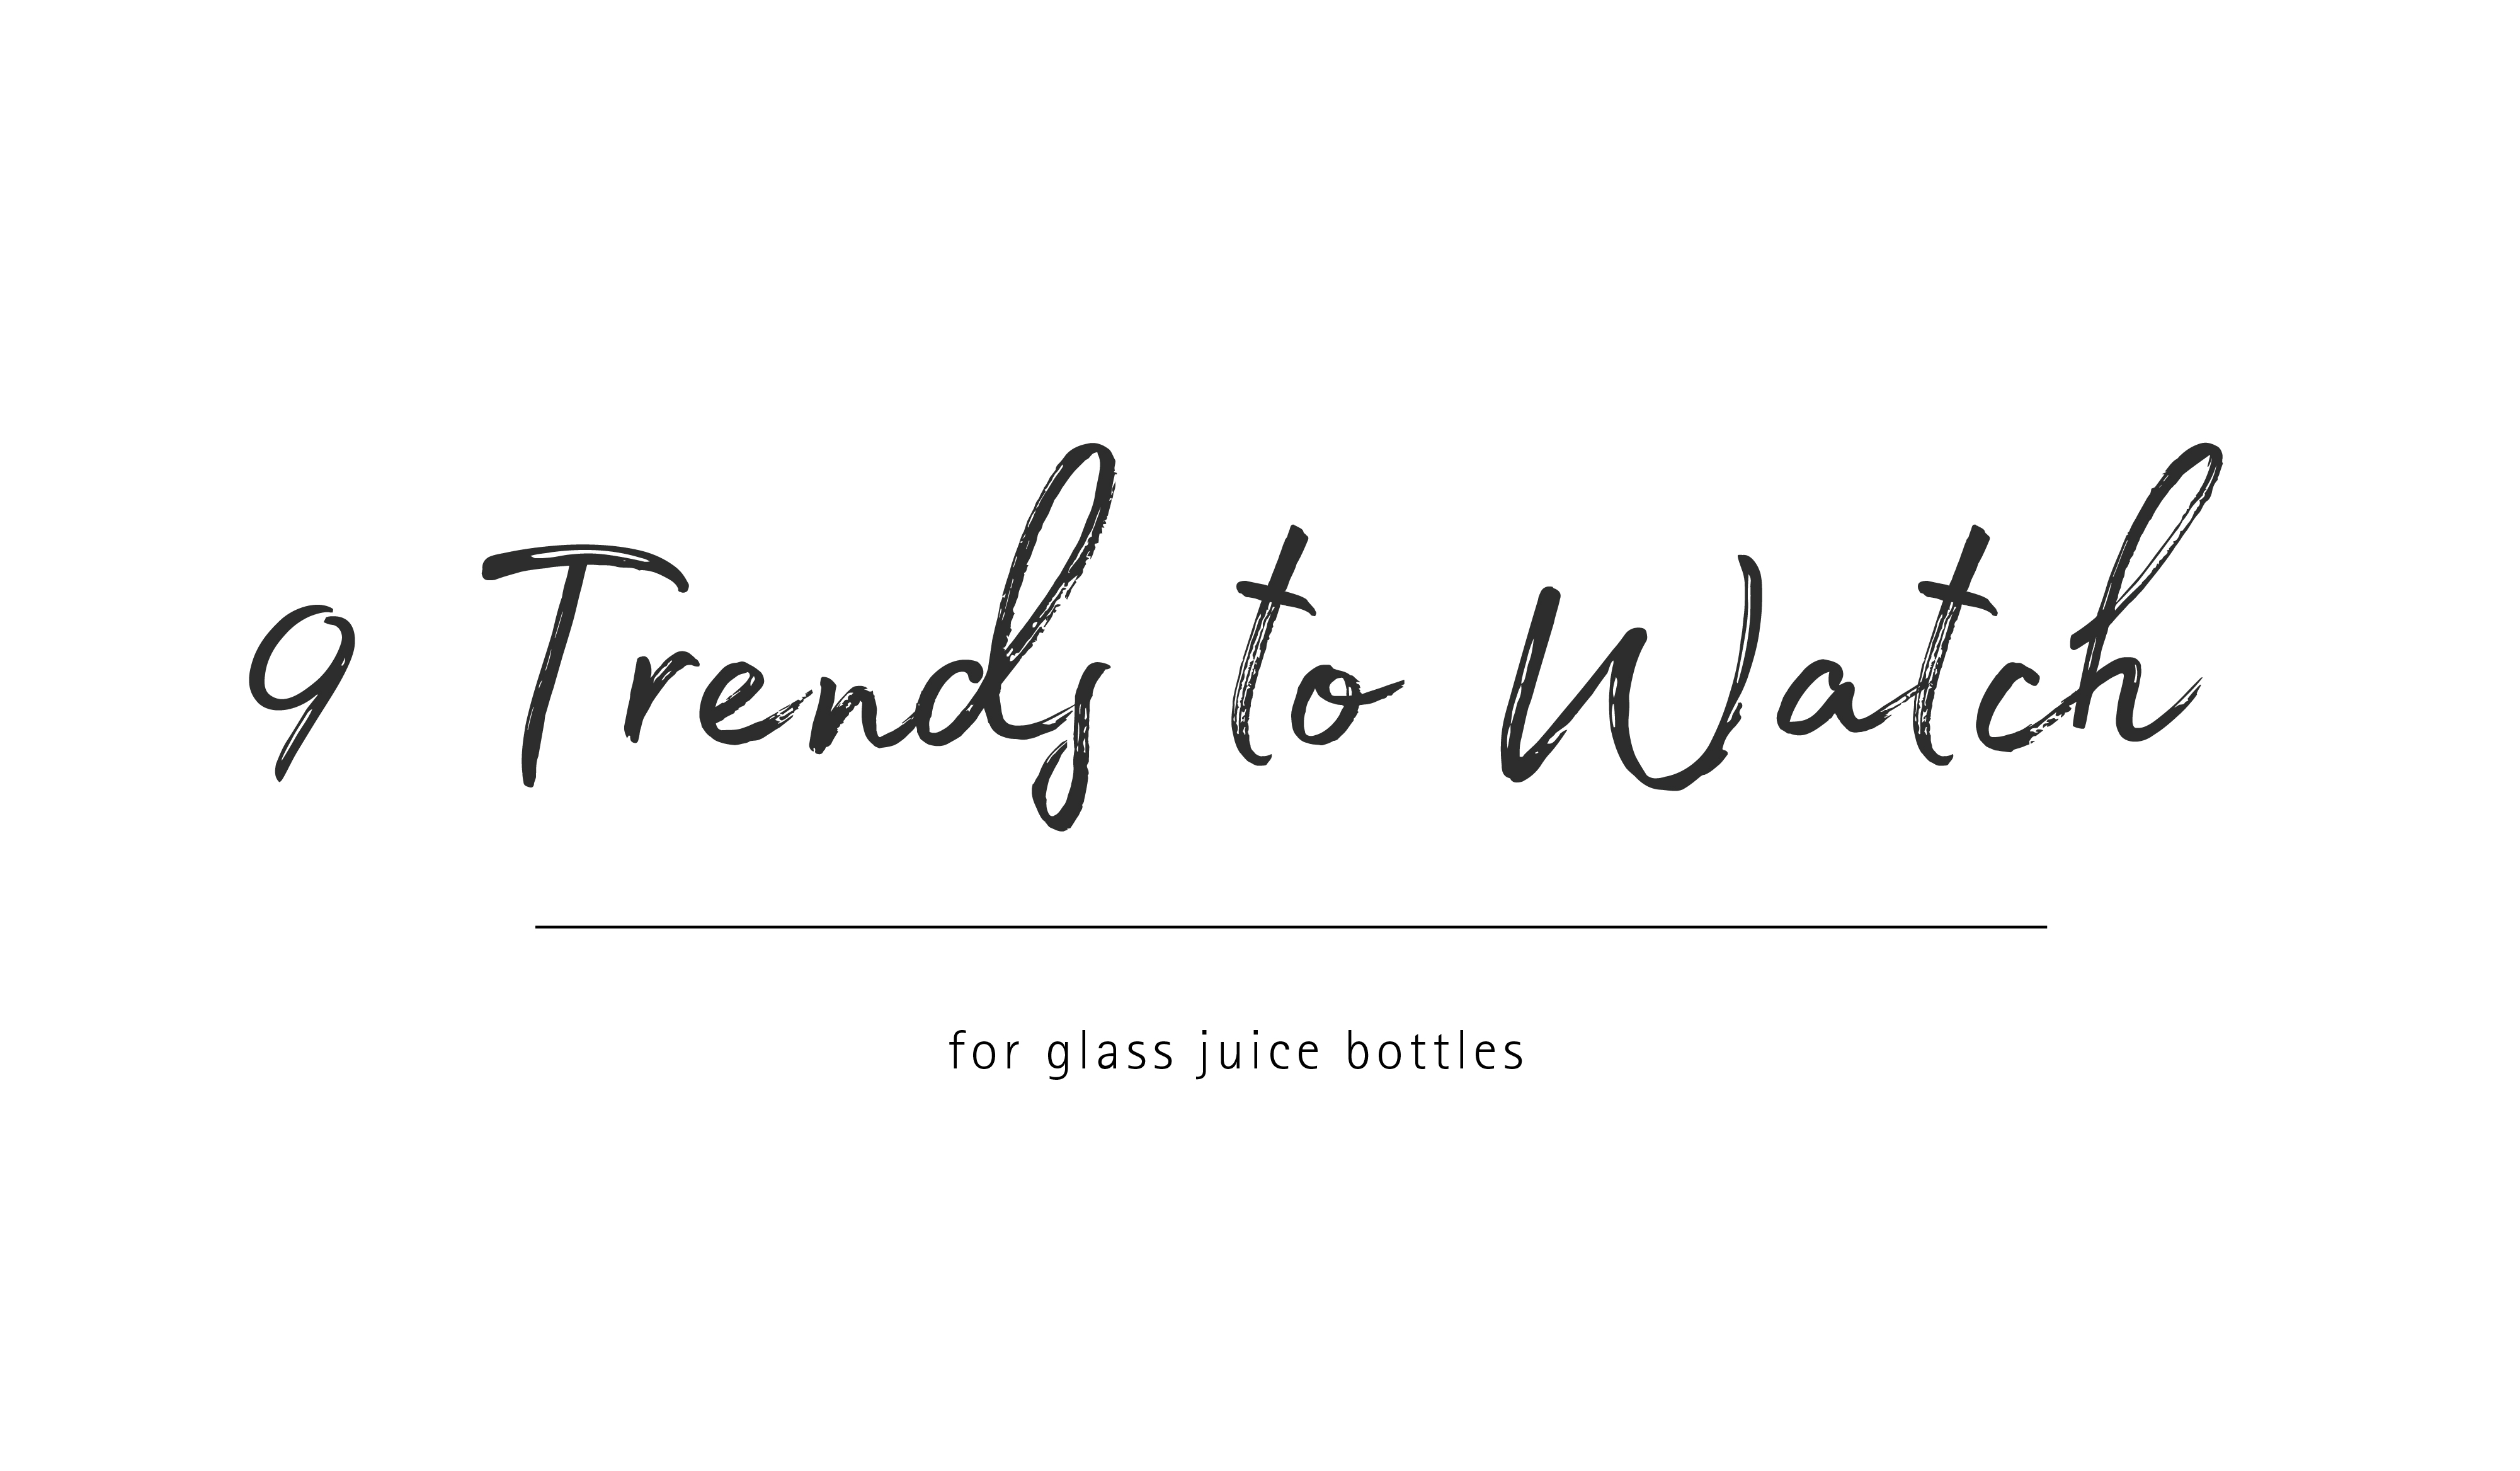 9 Branding Trends We Love for Glass Juice Bottles